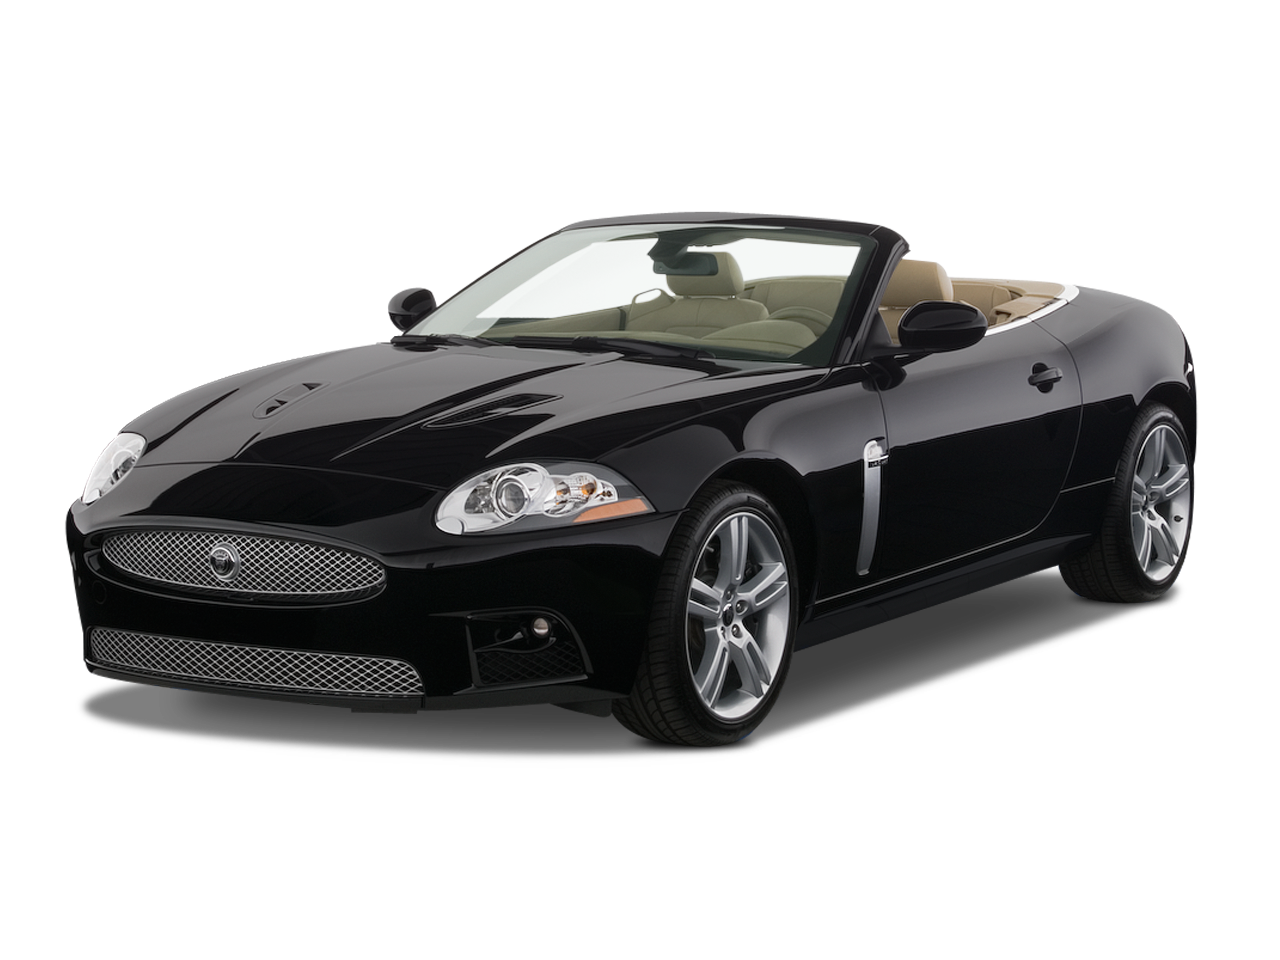 2008 Jaguar Xk-series #15